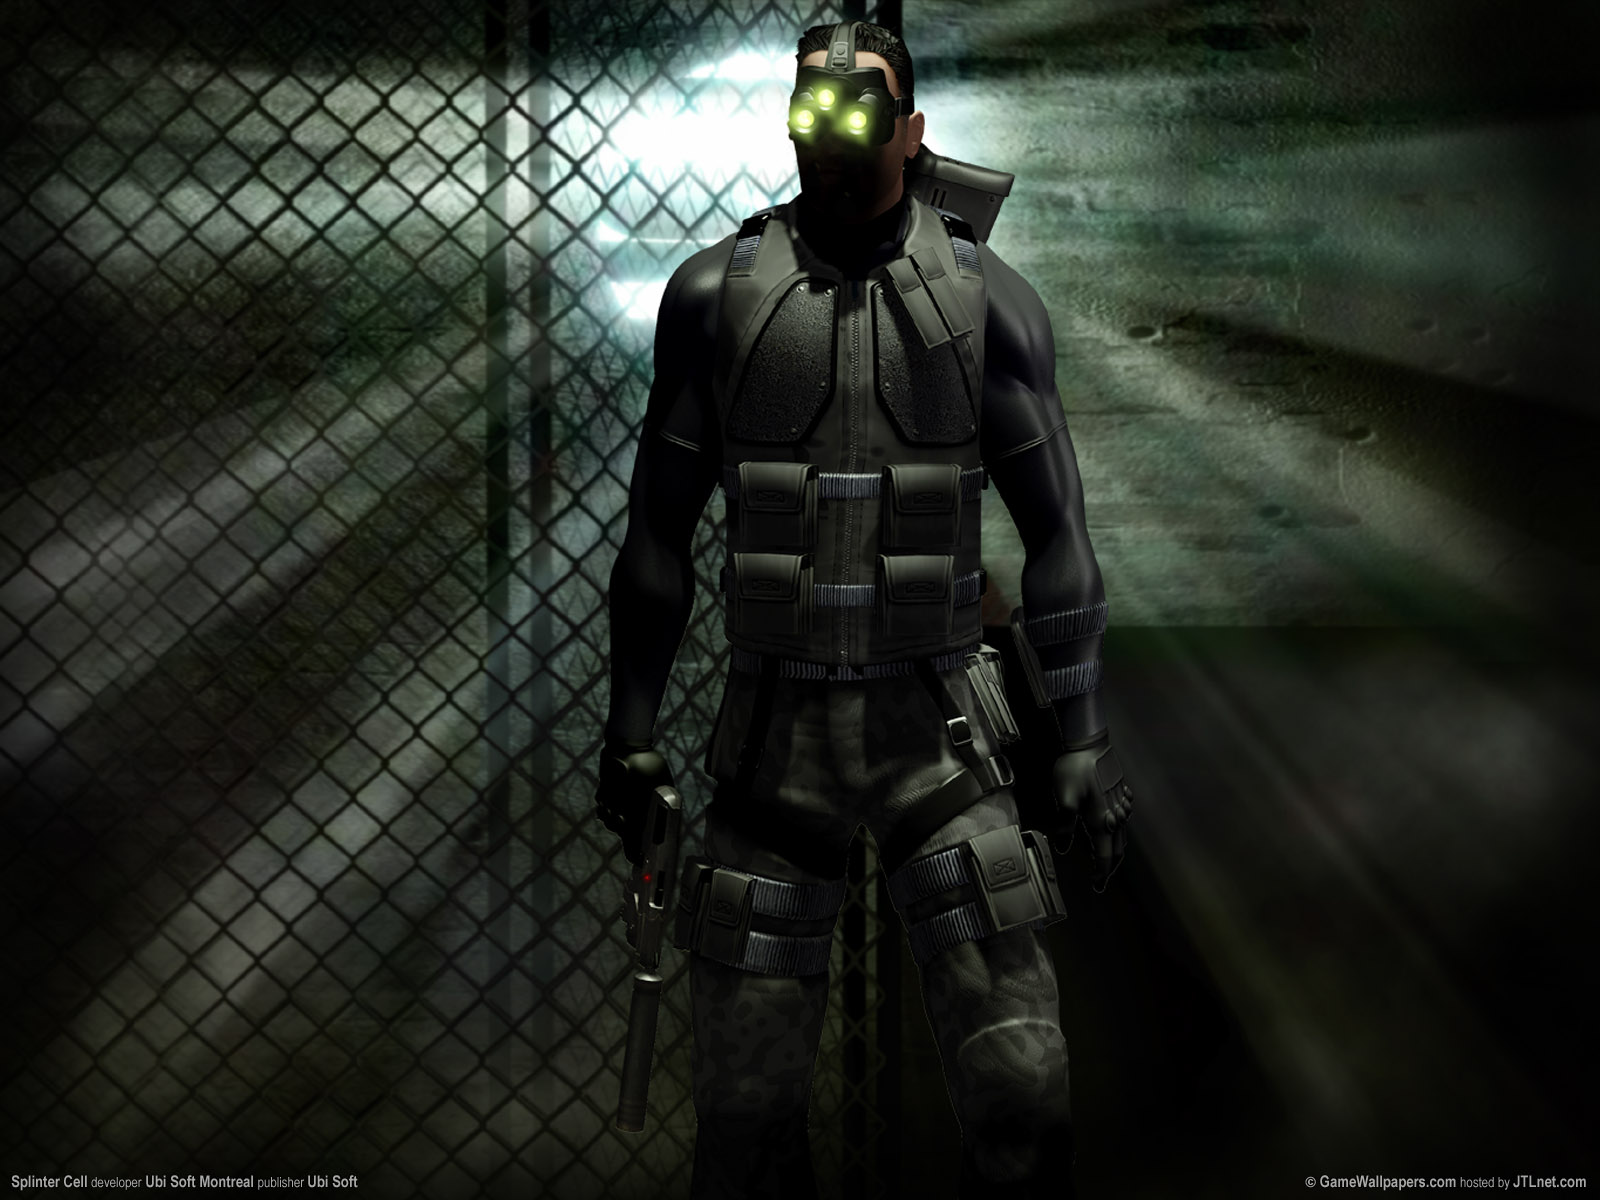 Splinter Cell Fondos De Pantalla Splinter Cell Fotos Gratis